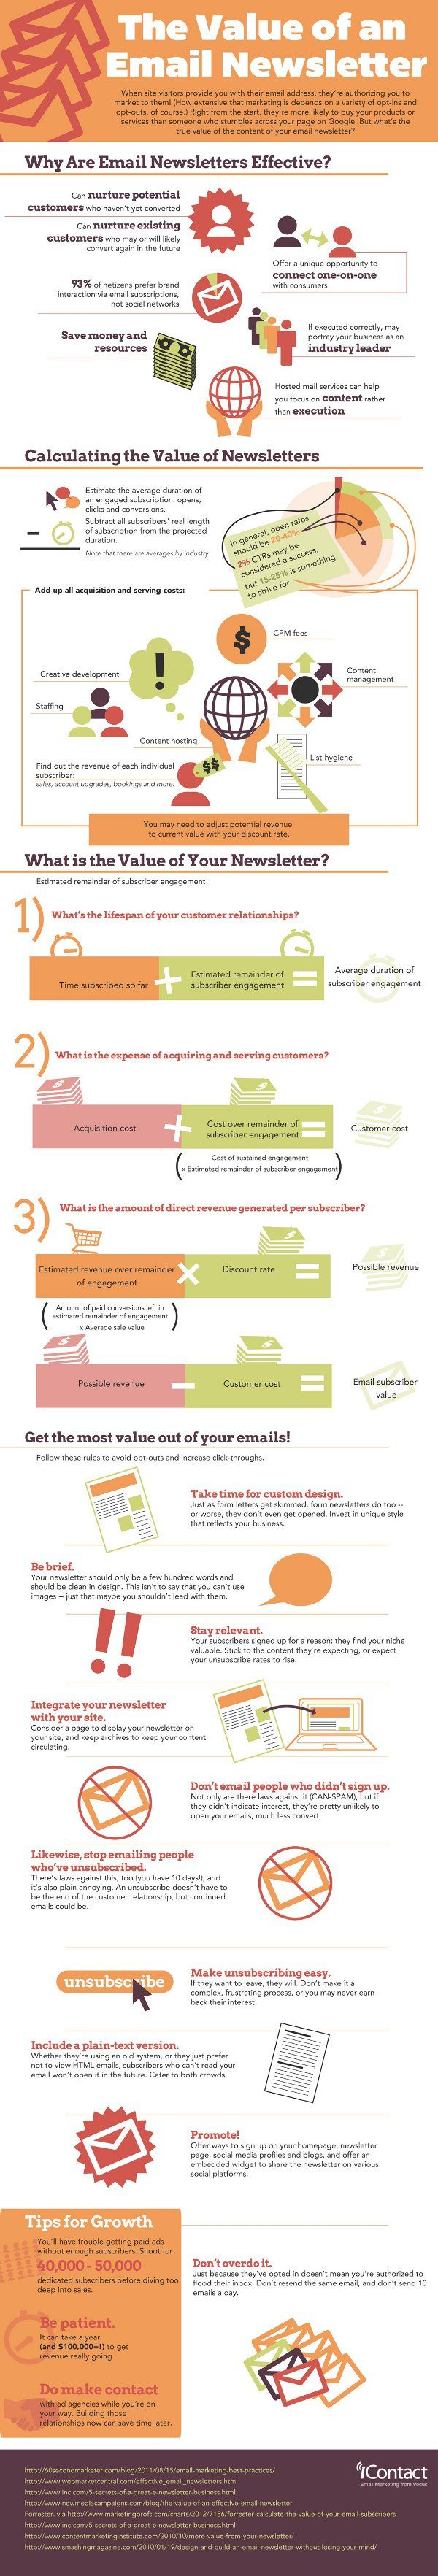 [Infographic] What's the Real Value of That Email Newsletter?